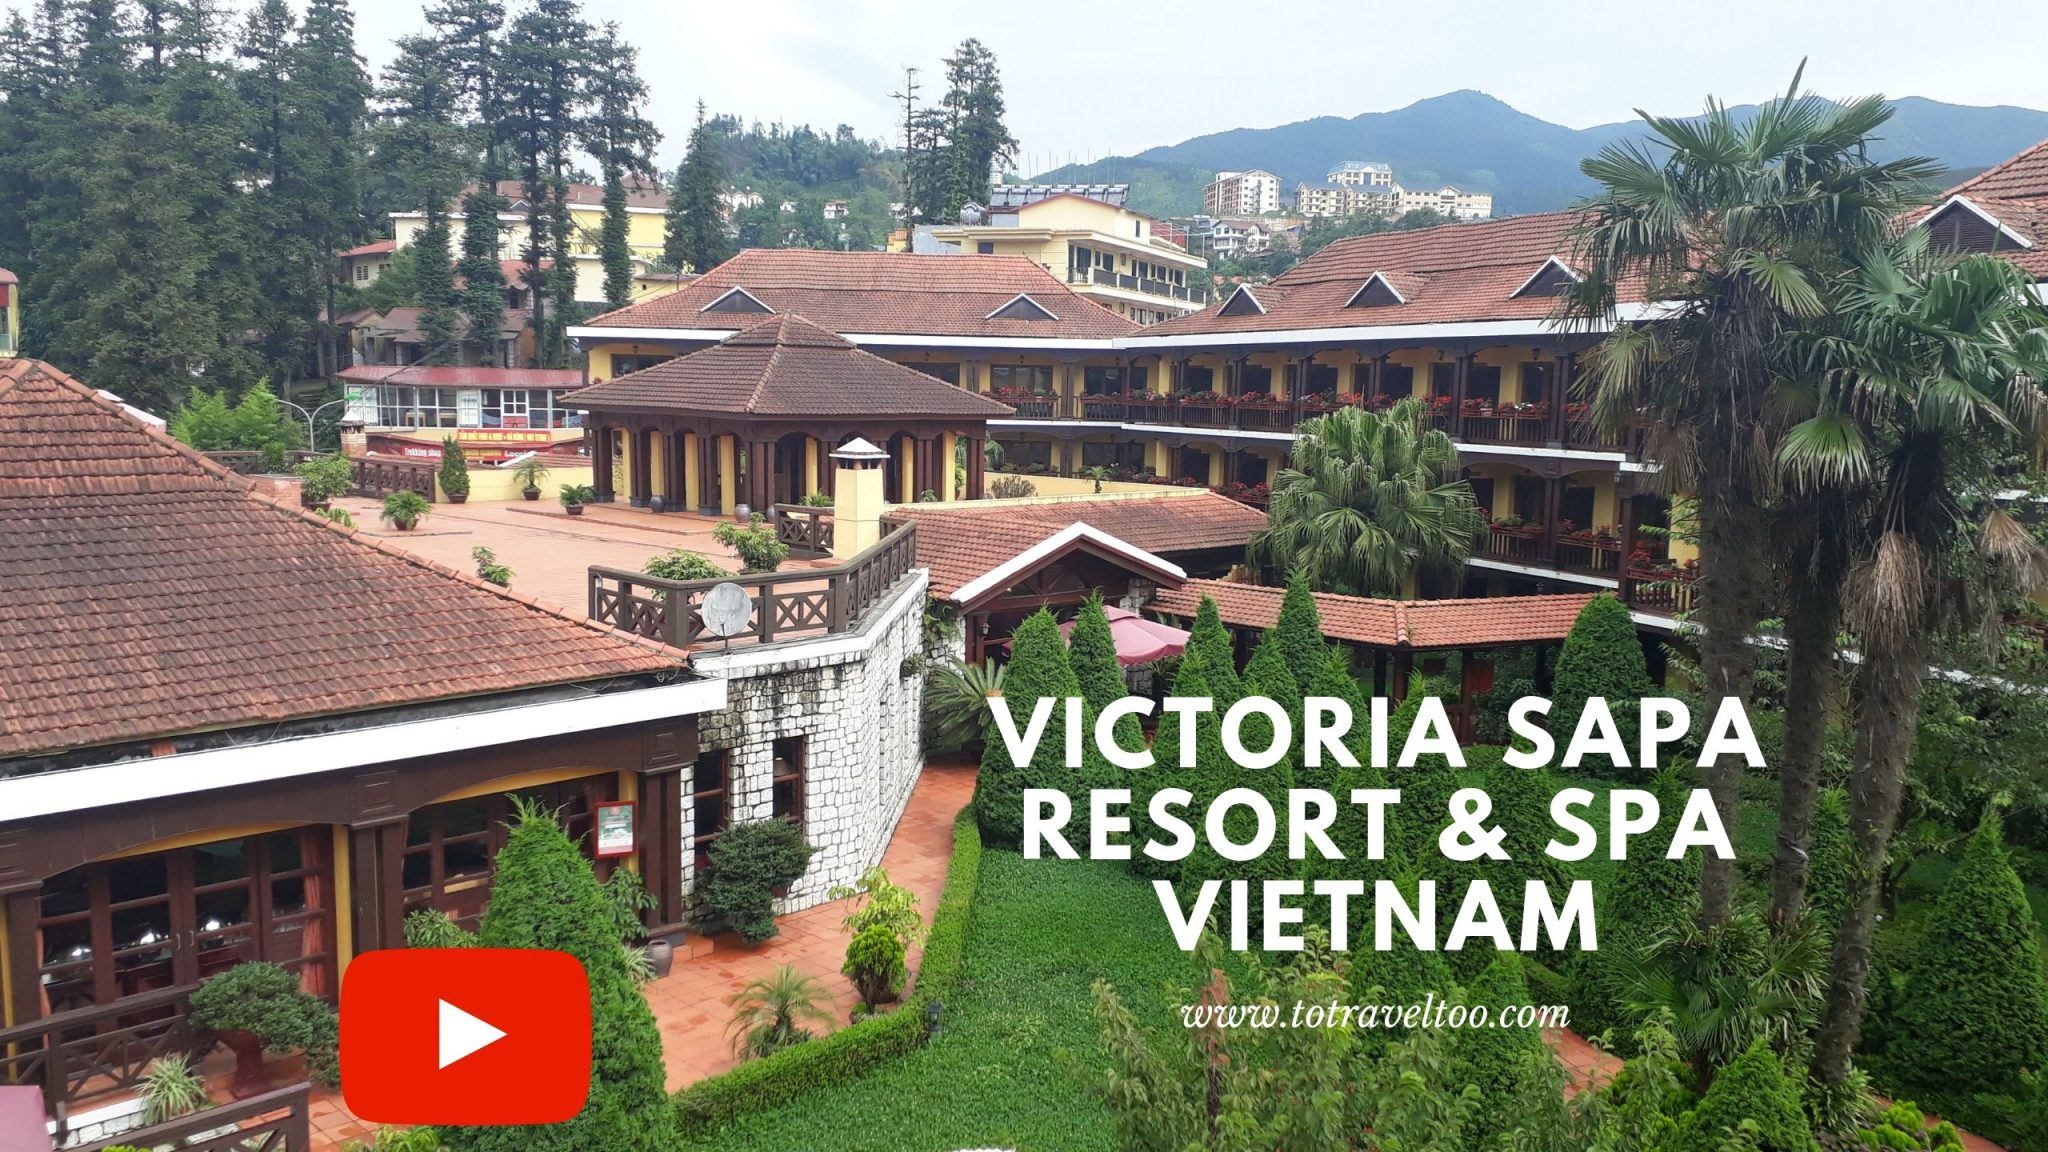 Youtube video of Victoria Sapa Resort & Spa